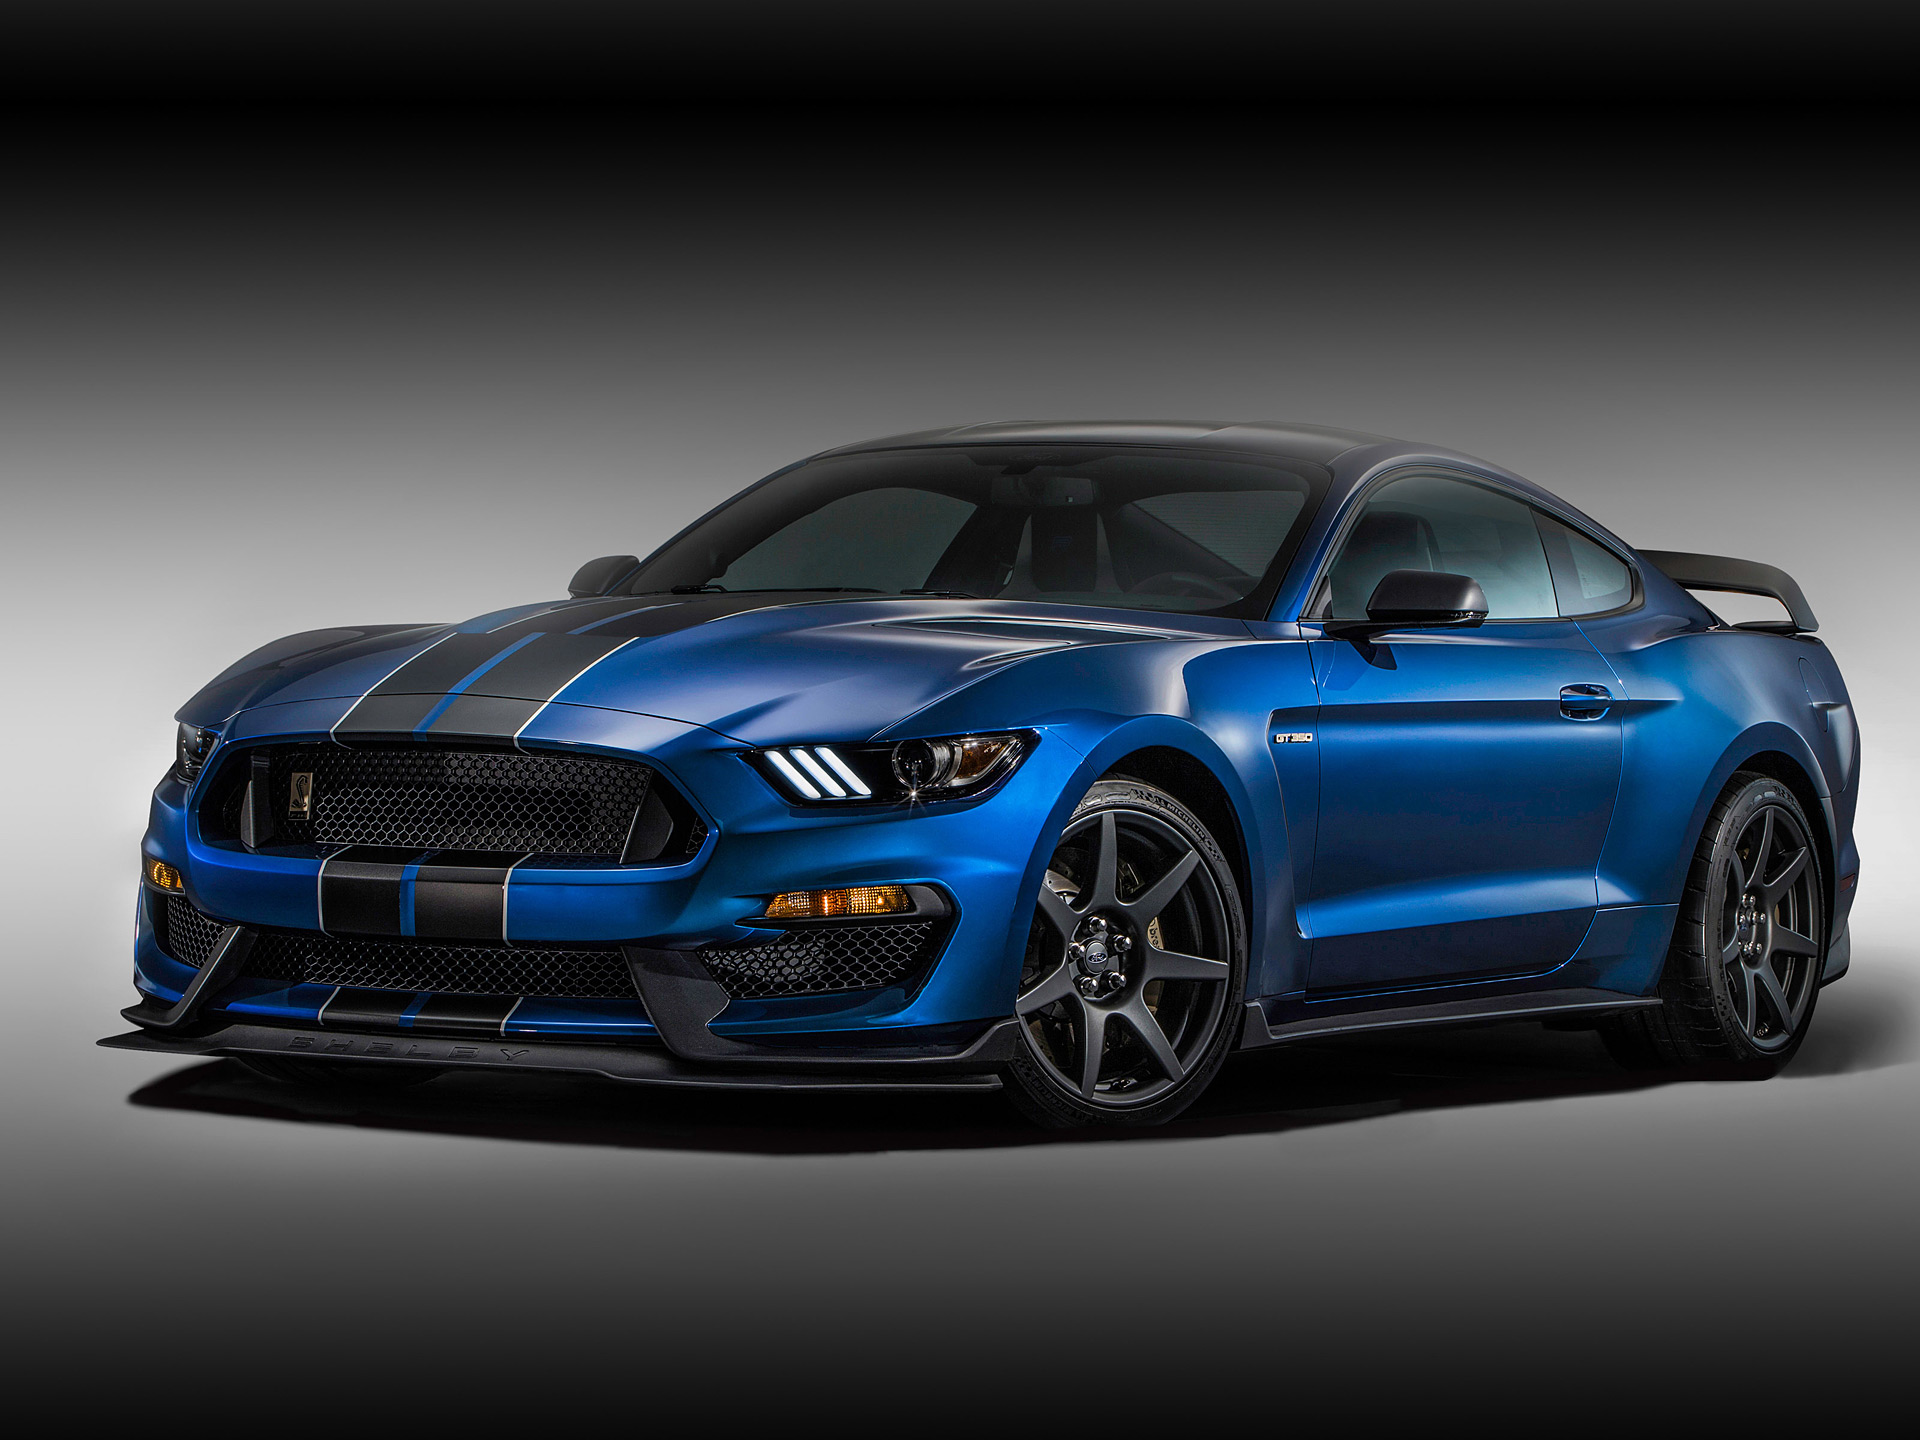 2016 Ford Shelby Mustang GT350R Wallpapers 1920x1440